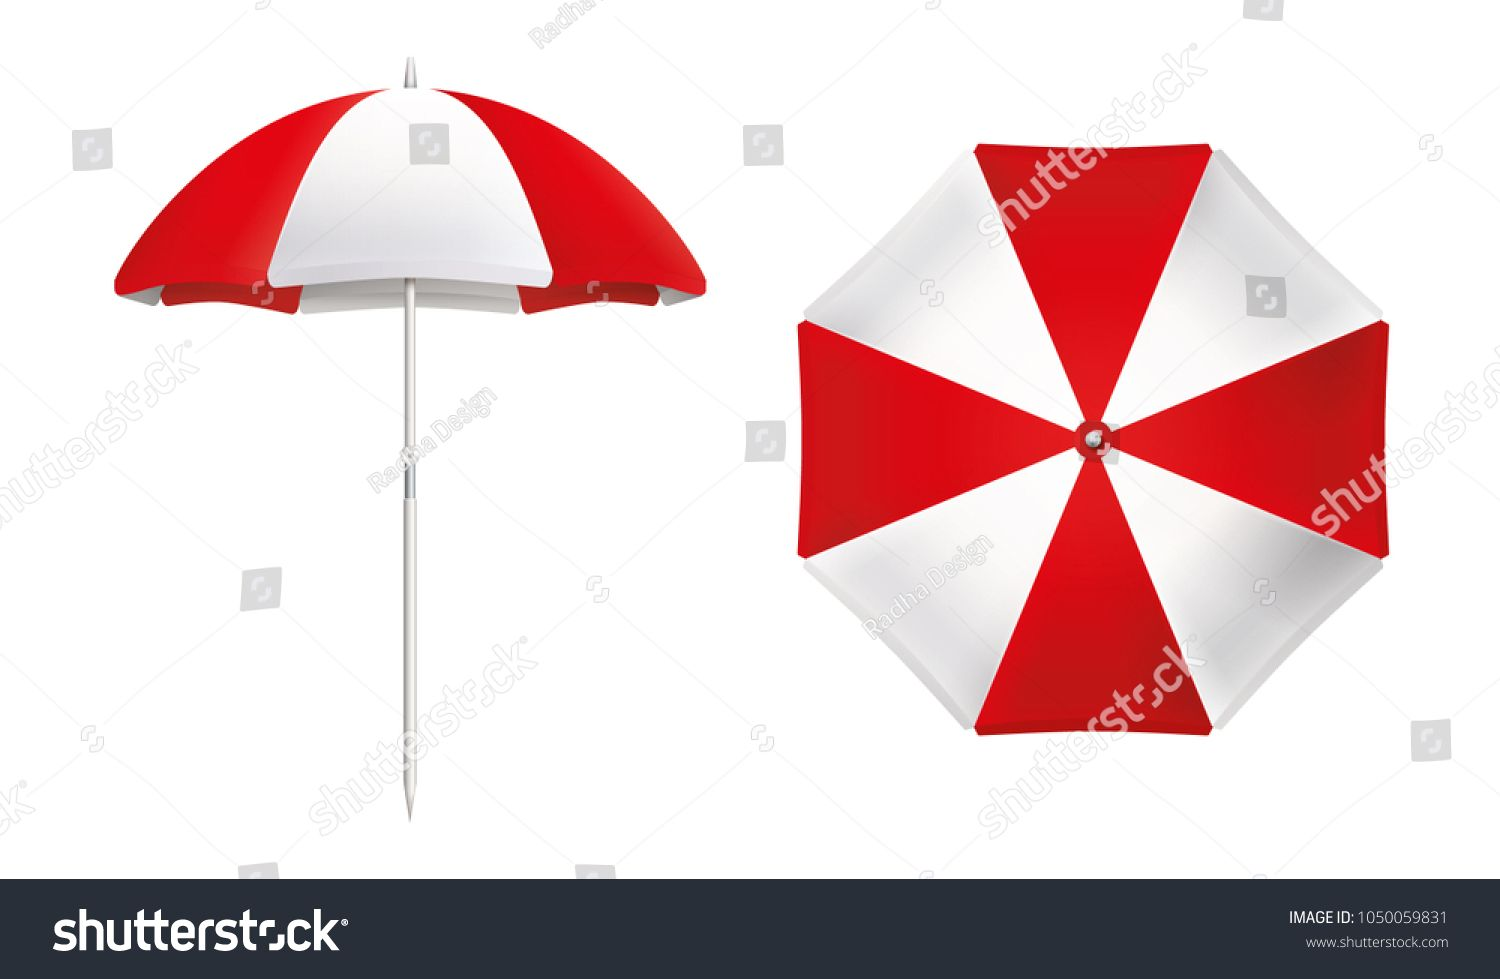 Beach Umbrella Set Red And White